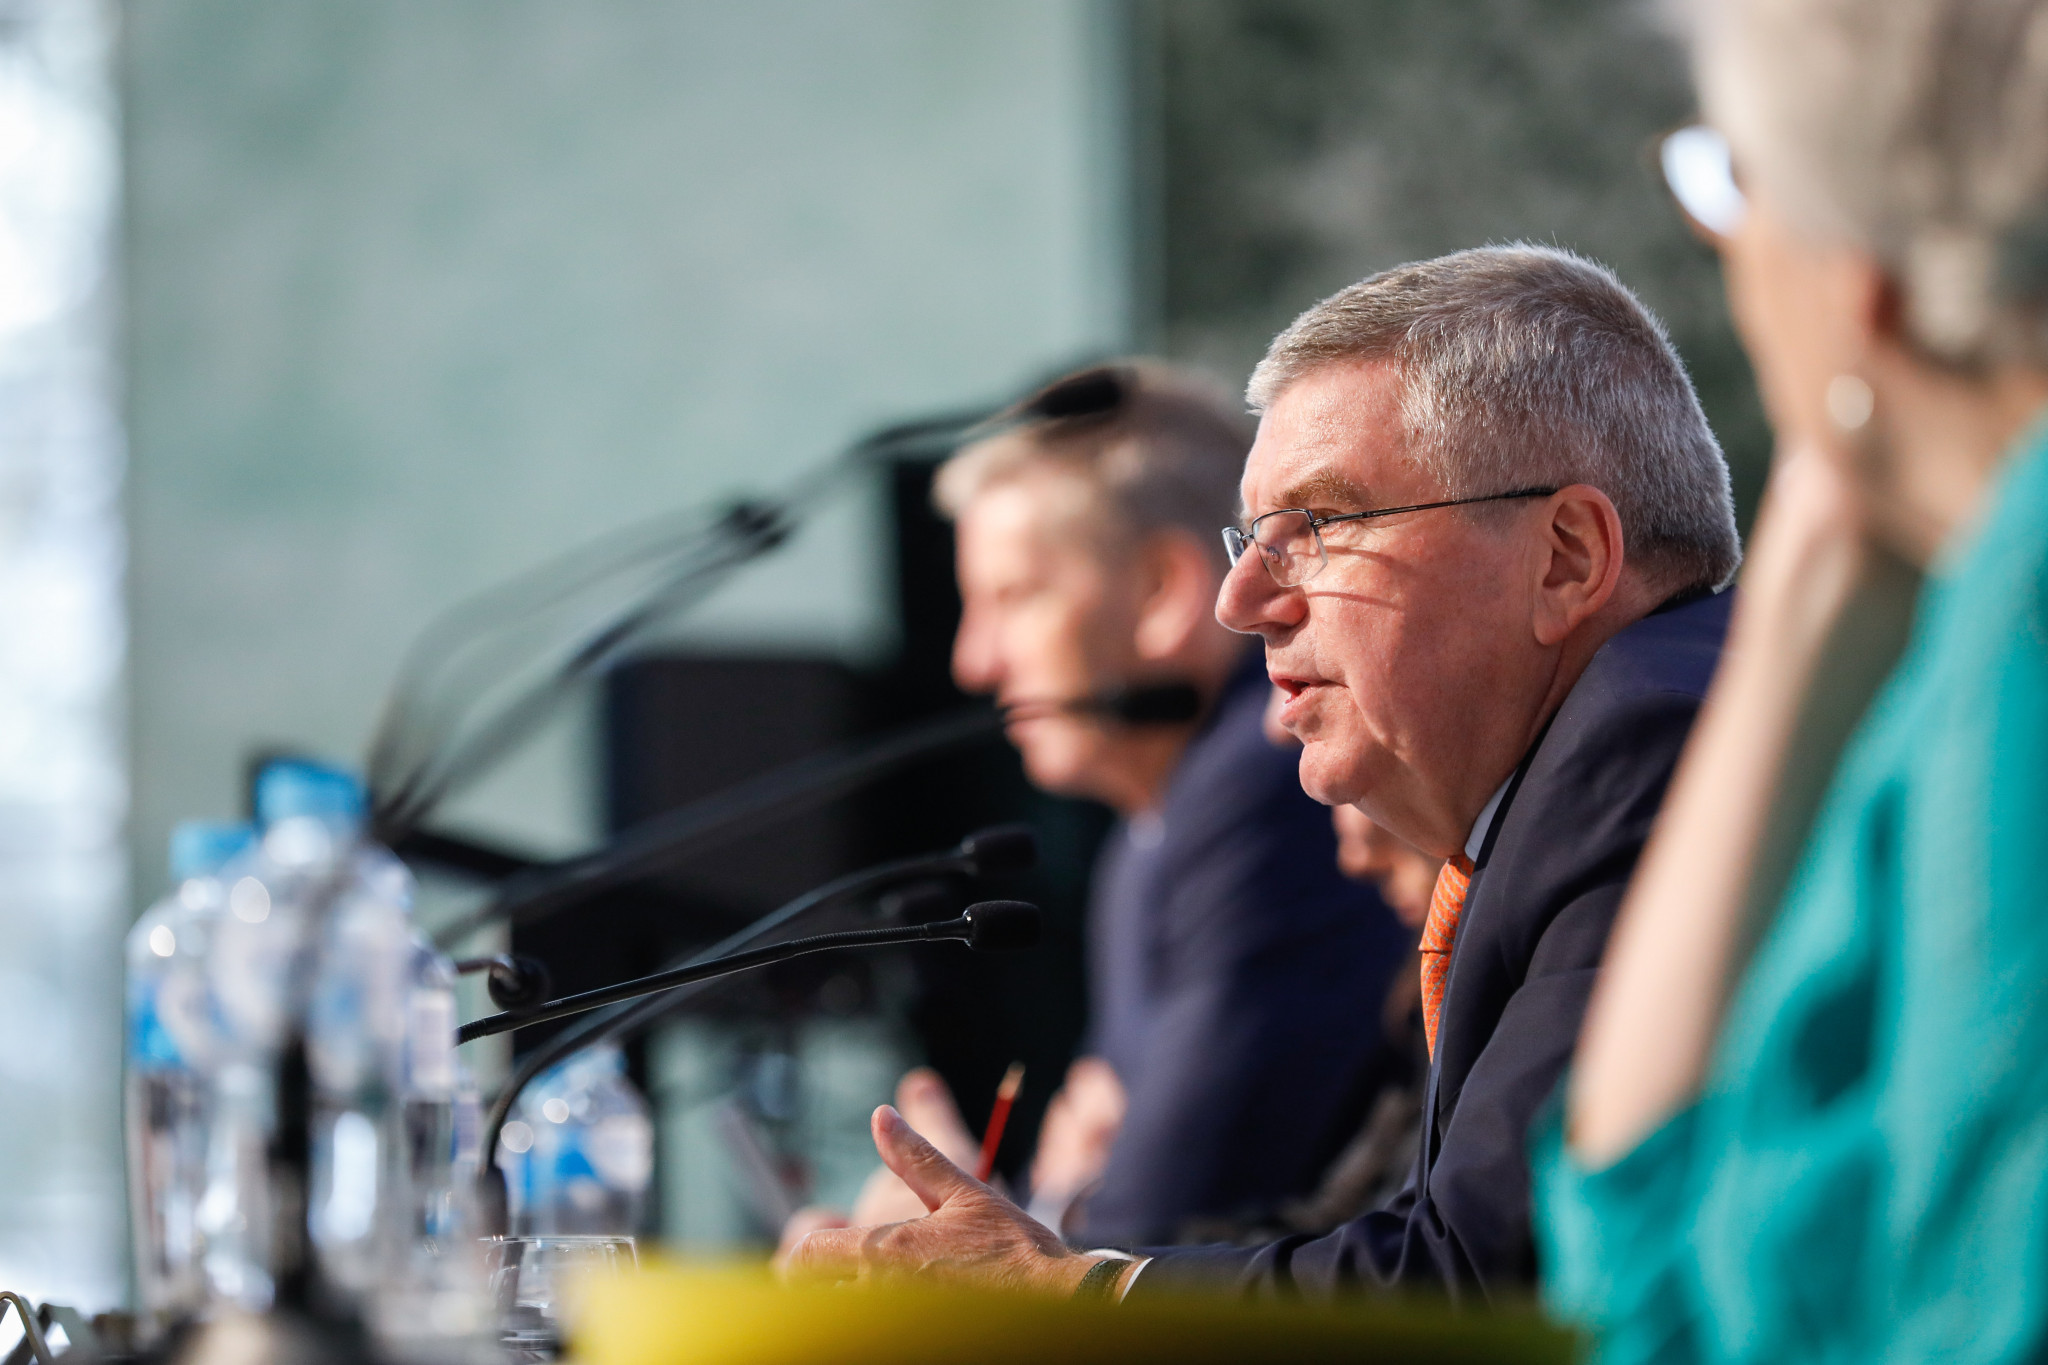 International Olympic Committee President Thomas Bach responds to questions from the media during the Australian Olympic Committee Annual General Meeting in Sydney ©Getty Images